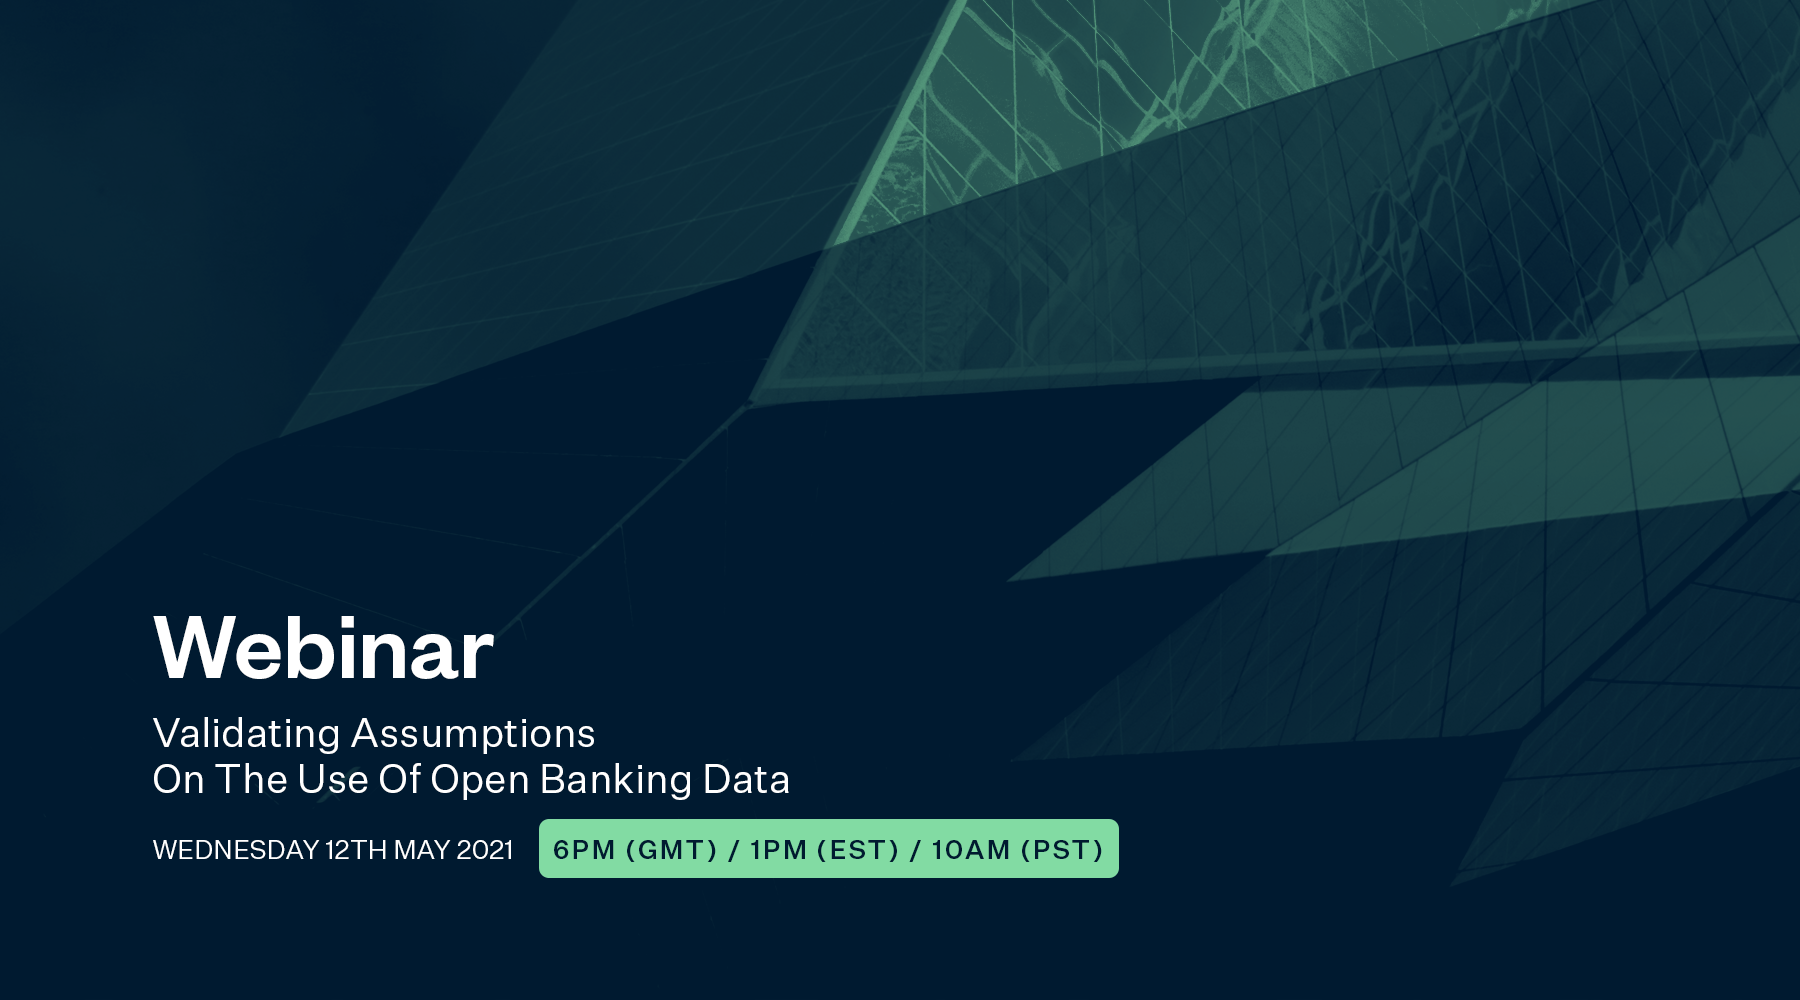 Validating the Assumptions on the use of Open Banking Data